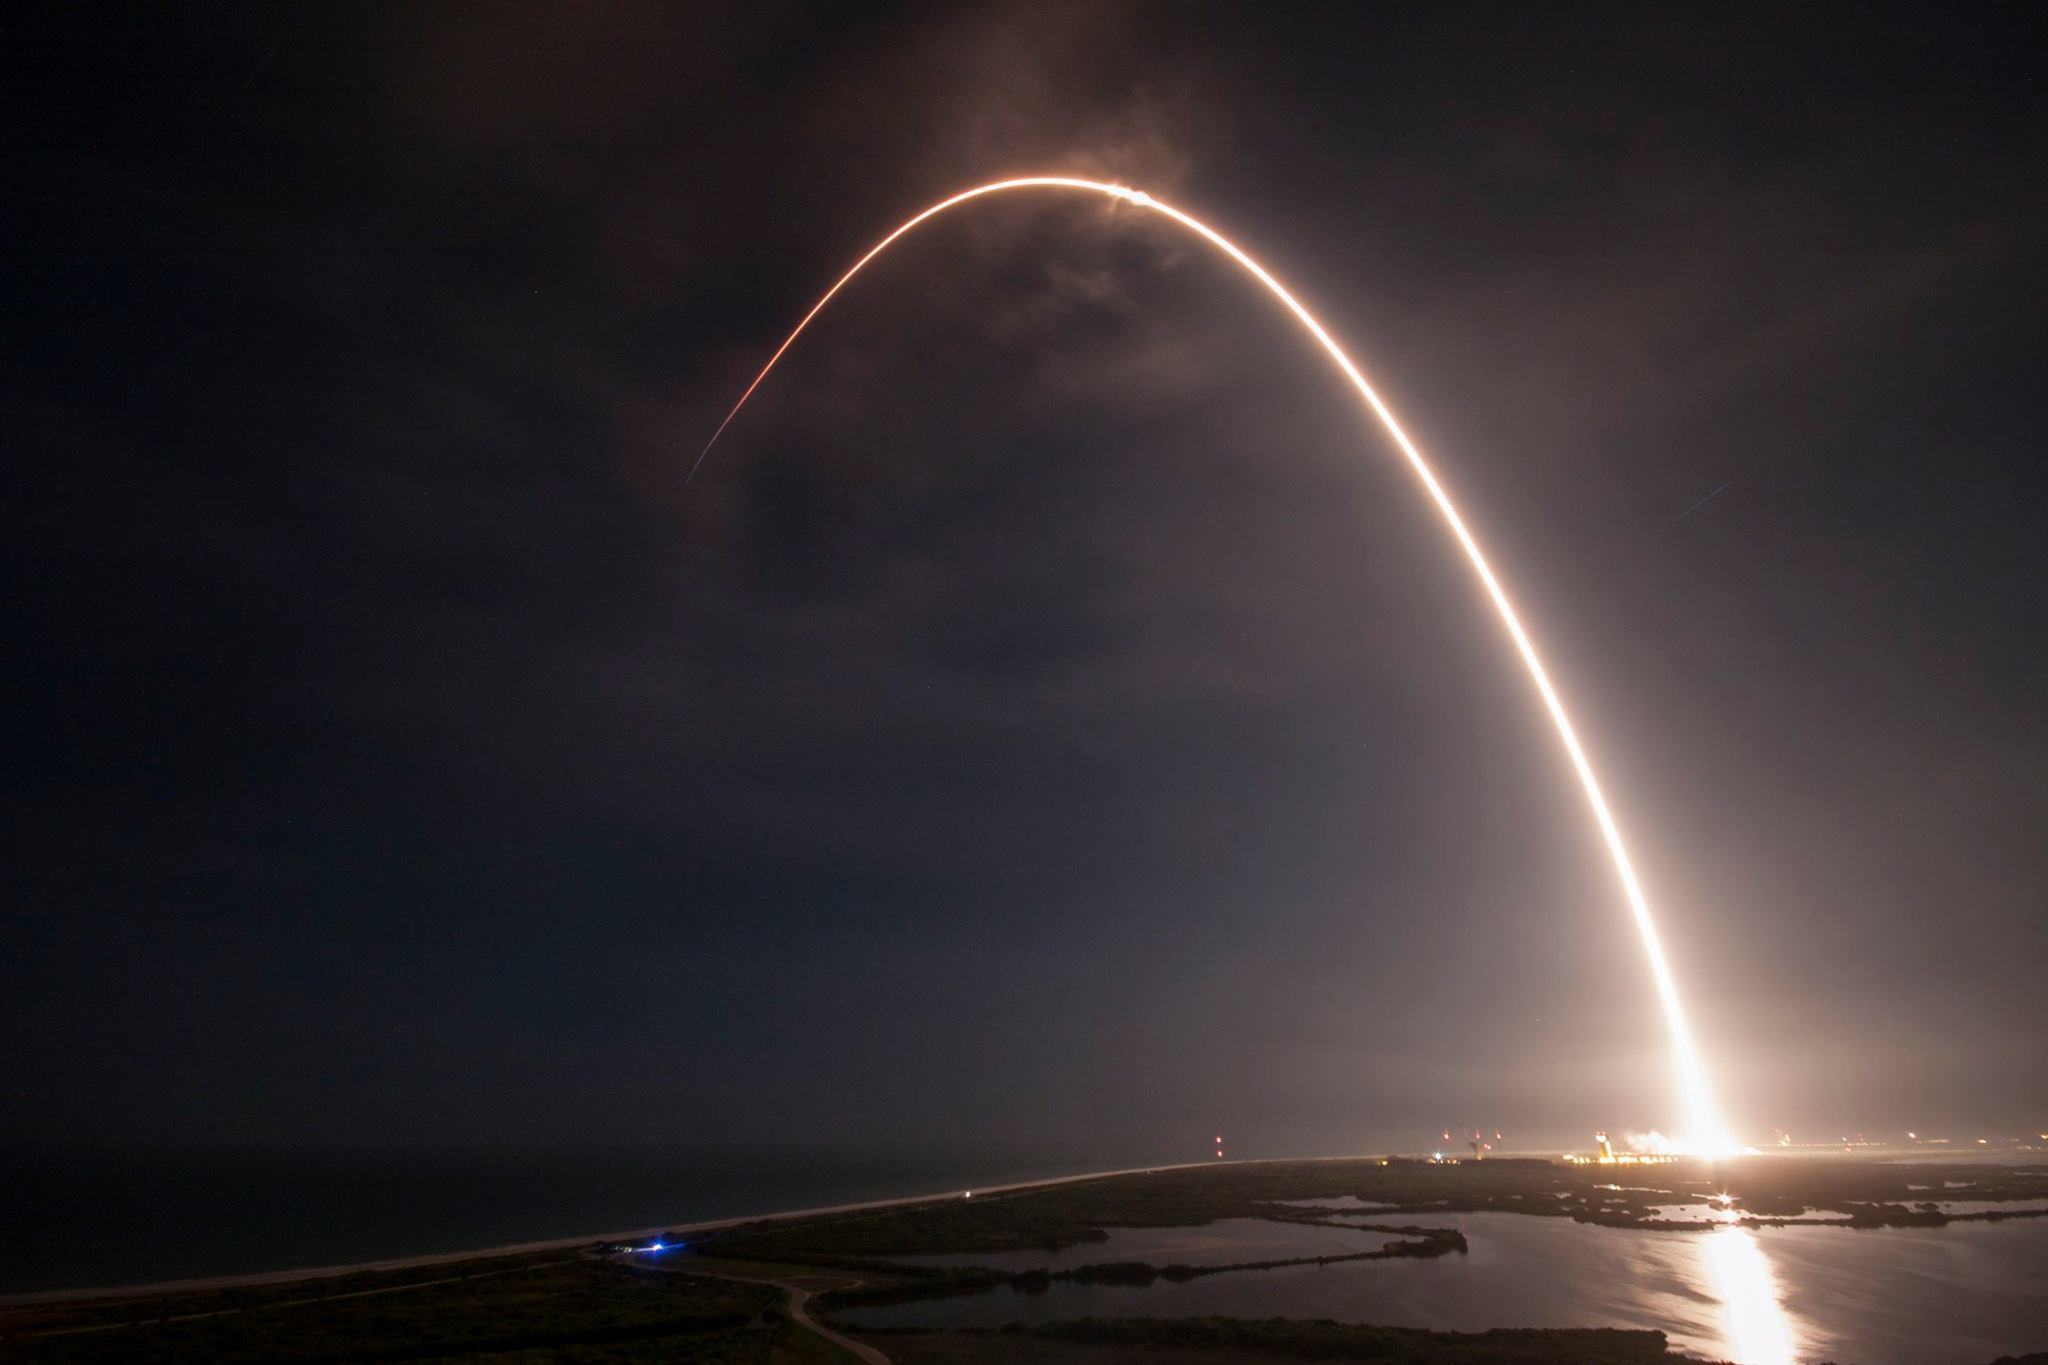 The last time Falcon 9 successfully launched was in August.  On Aug. 14, Falcon 9 delivered the JCSAT-16 spacecraft to a Geostationary Transfer Orbit about 36,000 km from Earth.